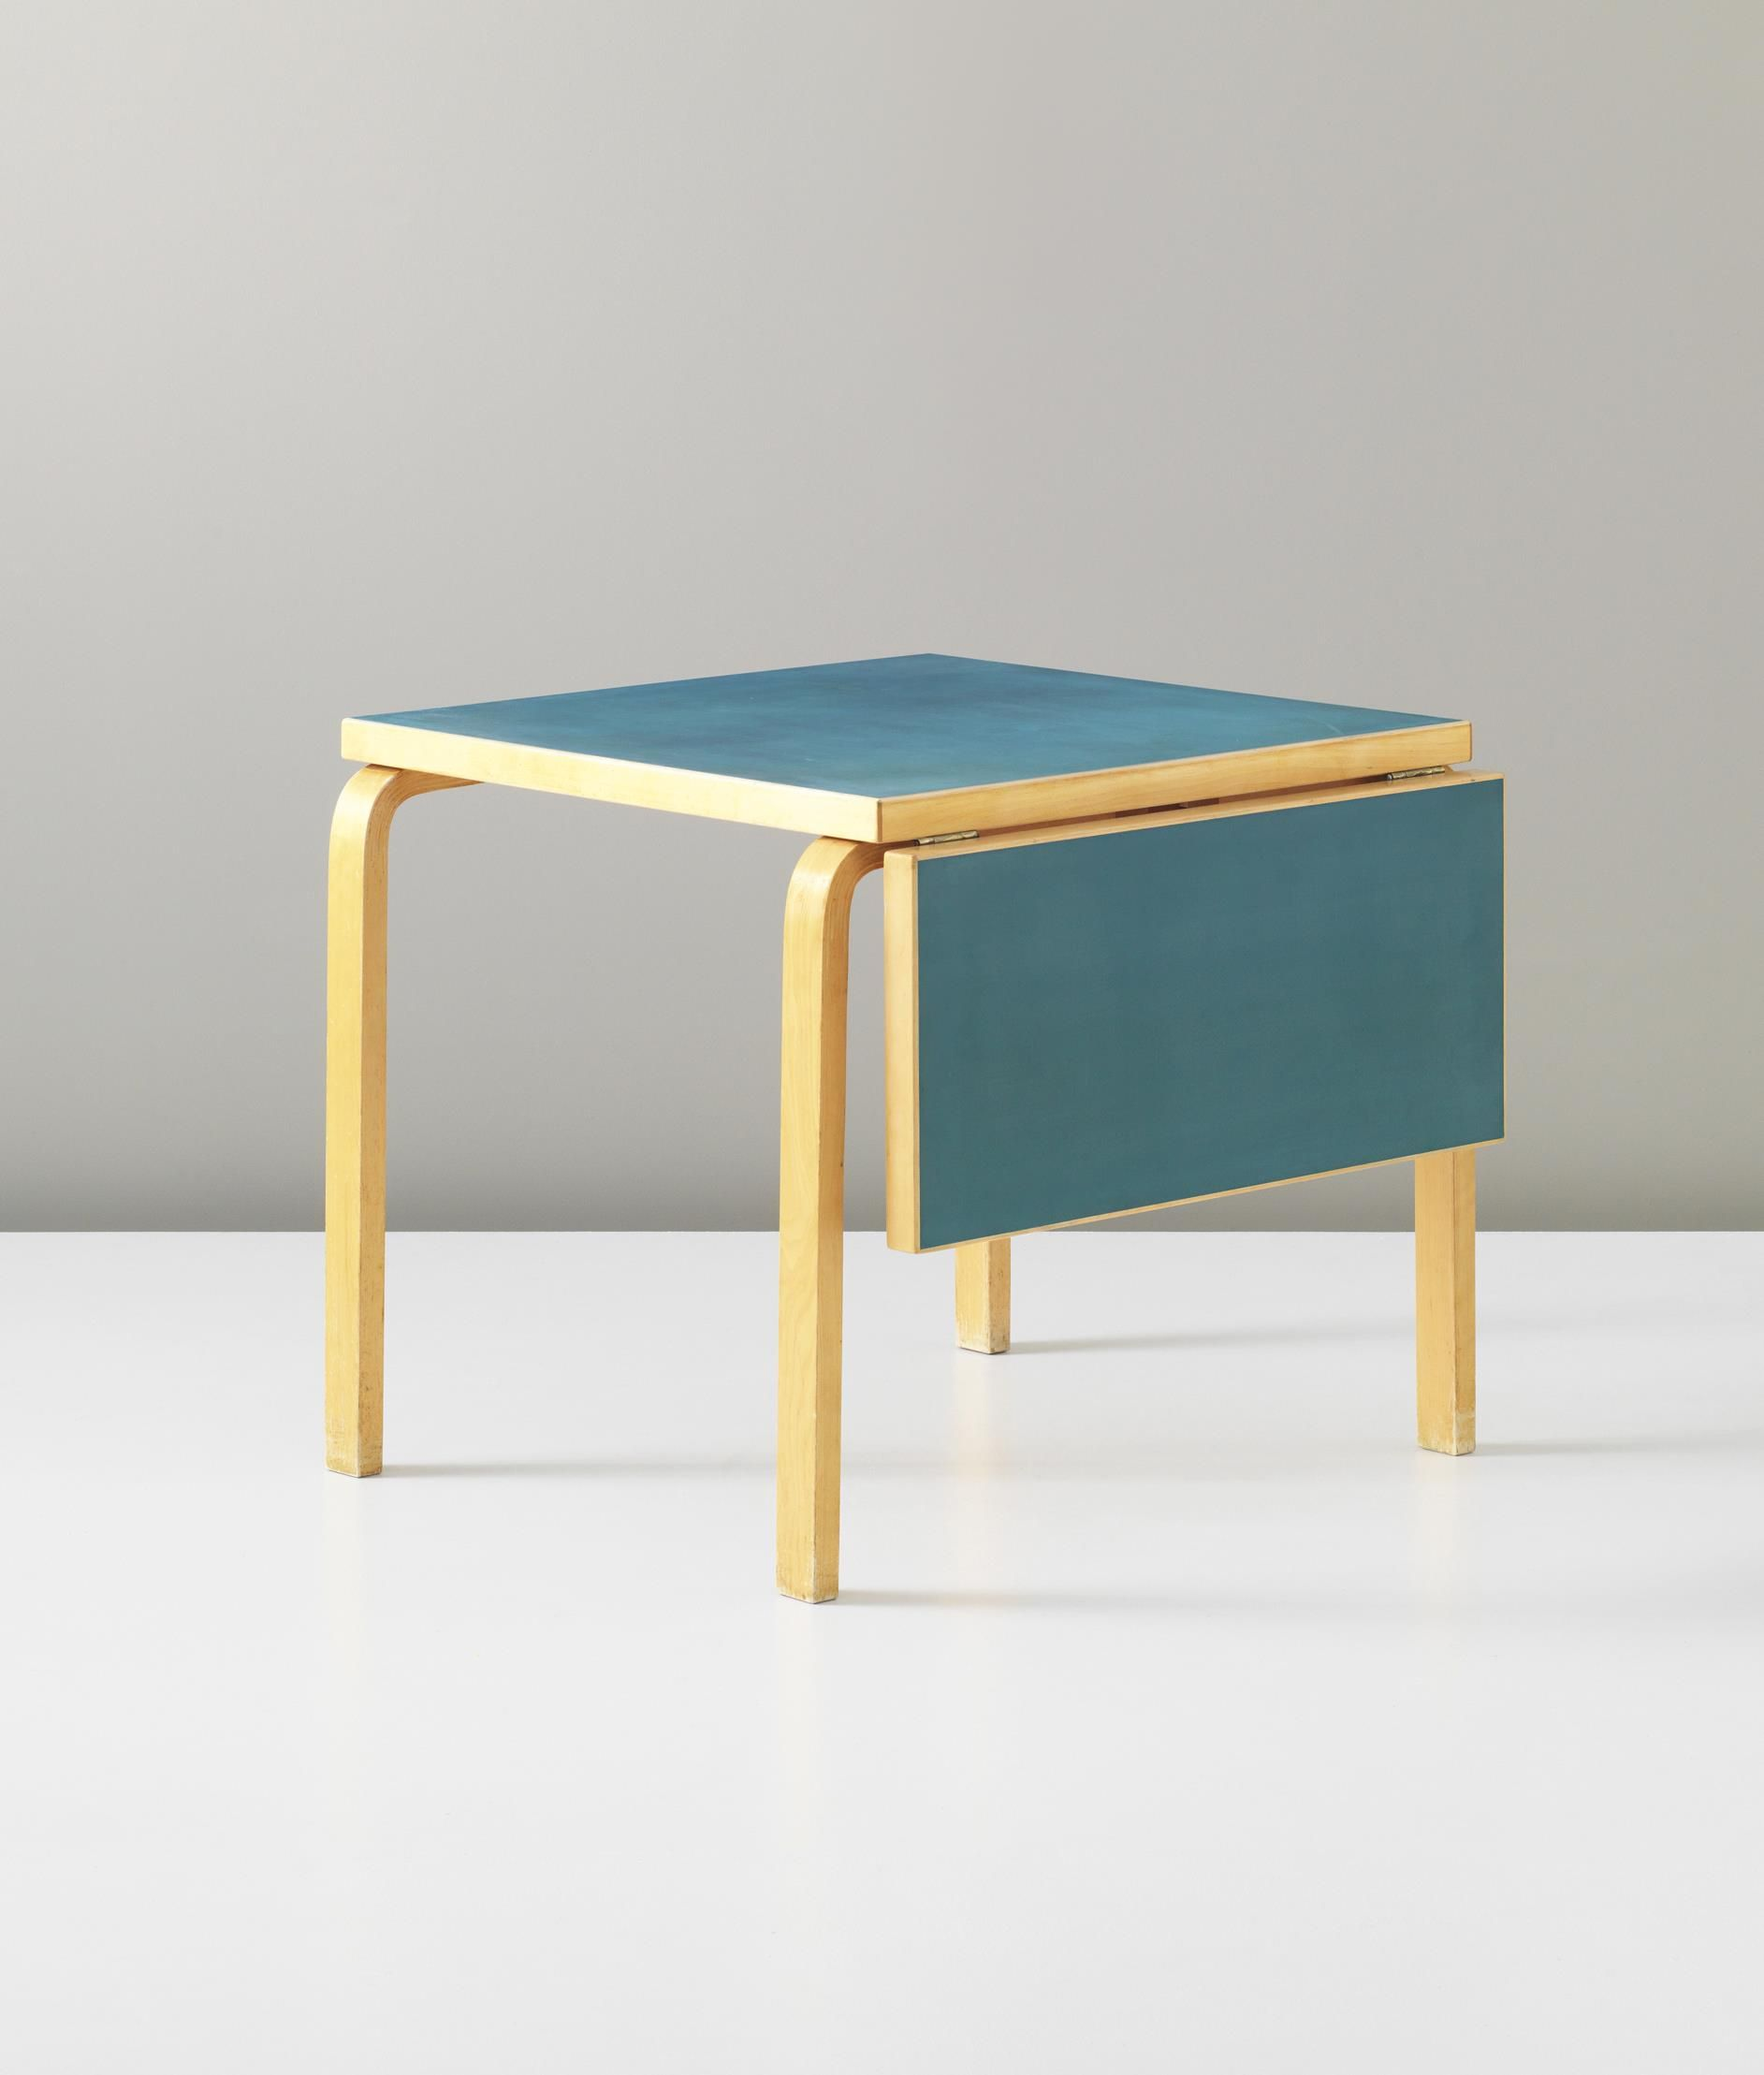 Alvar aalto birch plywood and linoleum table for artek for Alvar aalto muebles